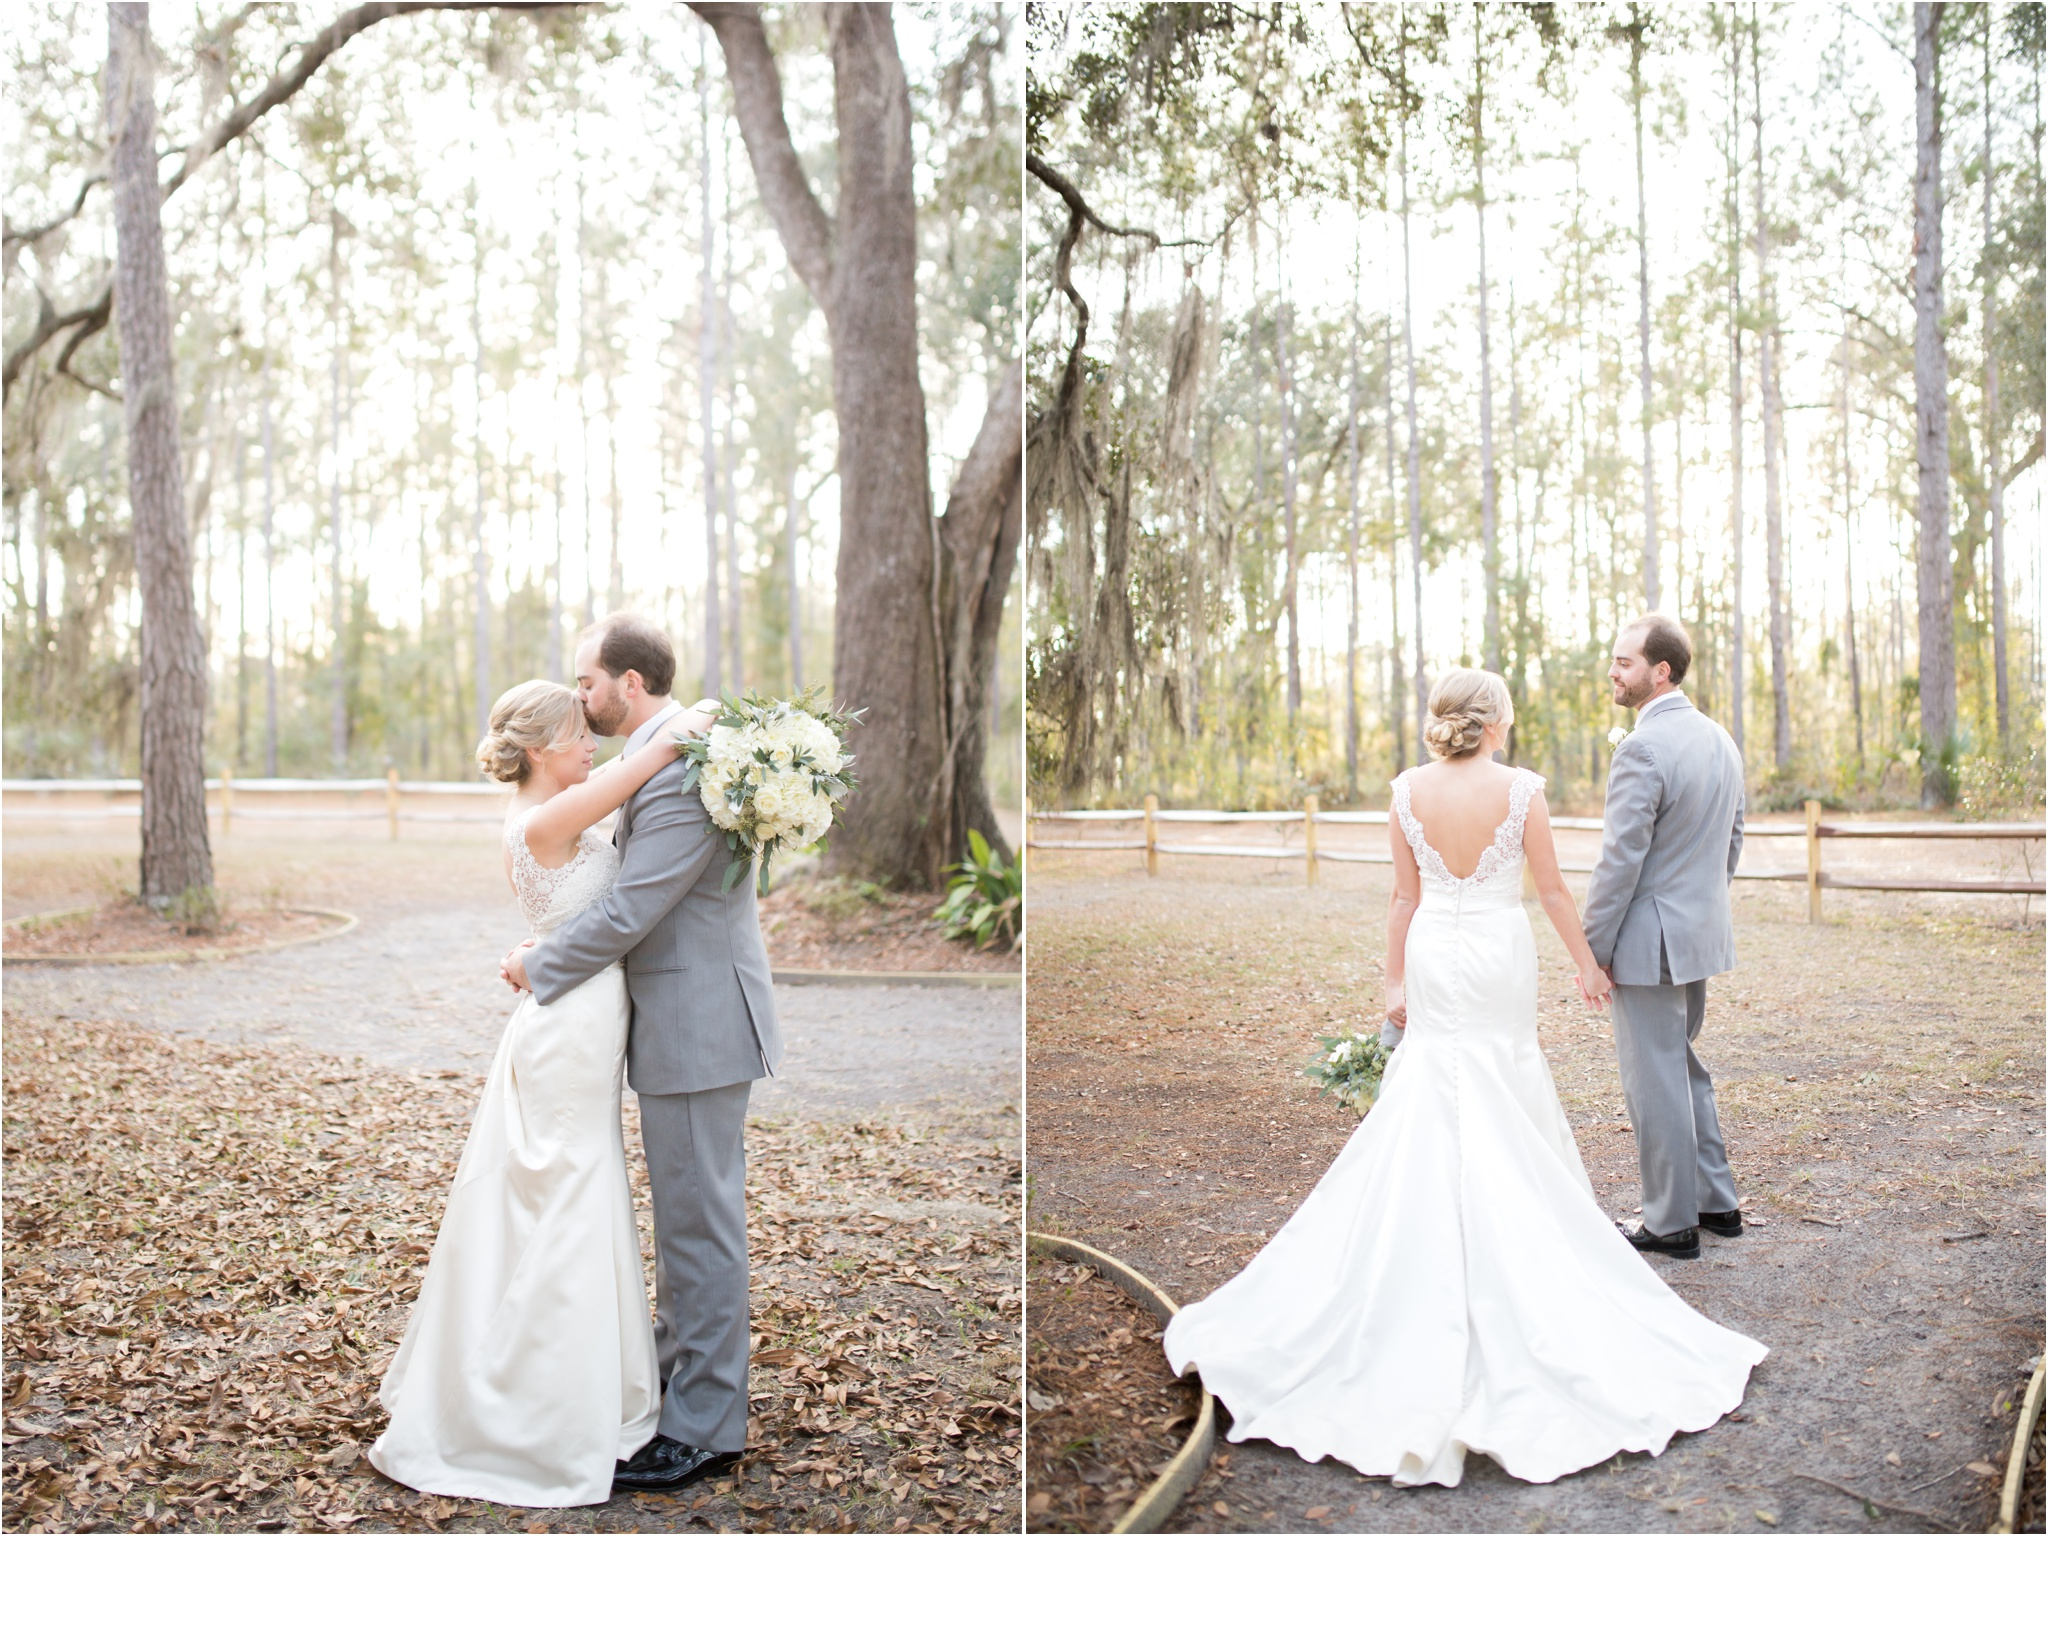 Rainey_Gregg_Photography_St._Simons_Island_Georgia_California_Wedding_Portrait_Photography_0504.jpg